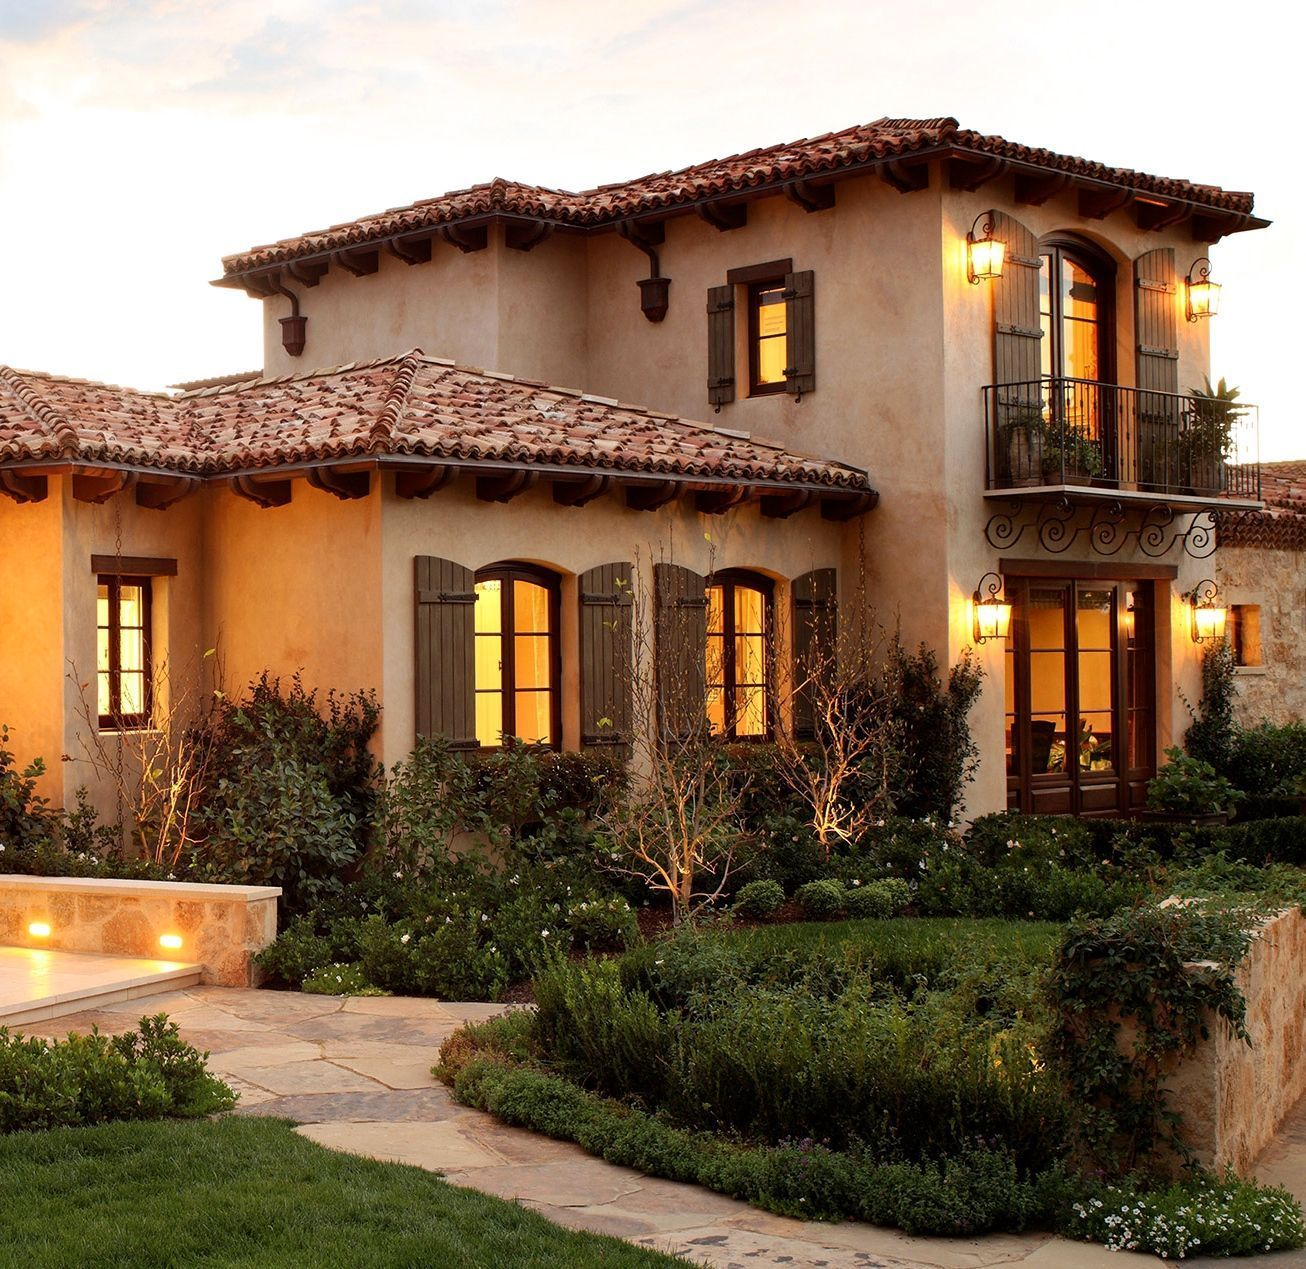 Tuscan Diy Must Do Ideas Mini Balcony High Ceilings Rustic Paint Walls Taupes Wood T Spanish Style Homes Mediterranean Style Homes Mediterranean Homes